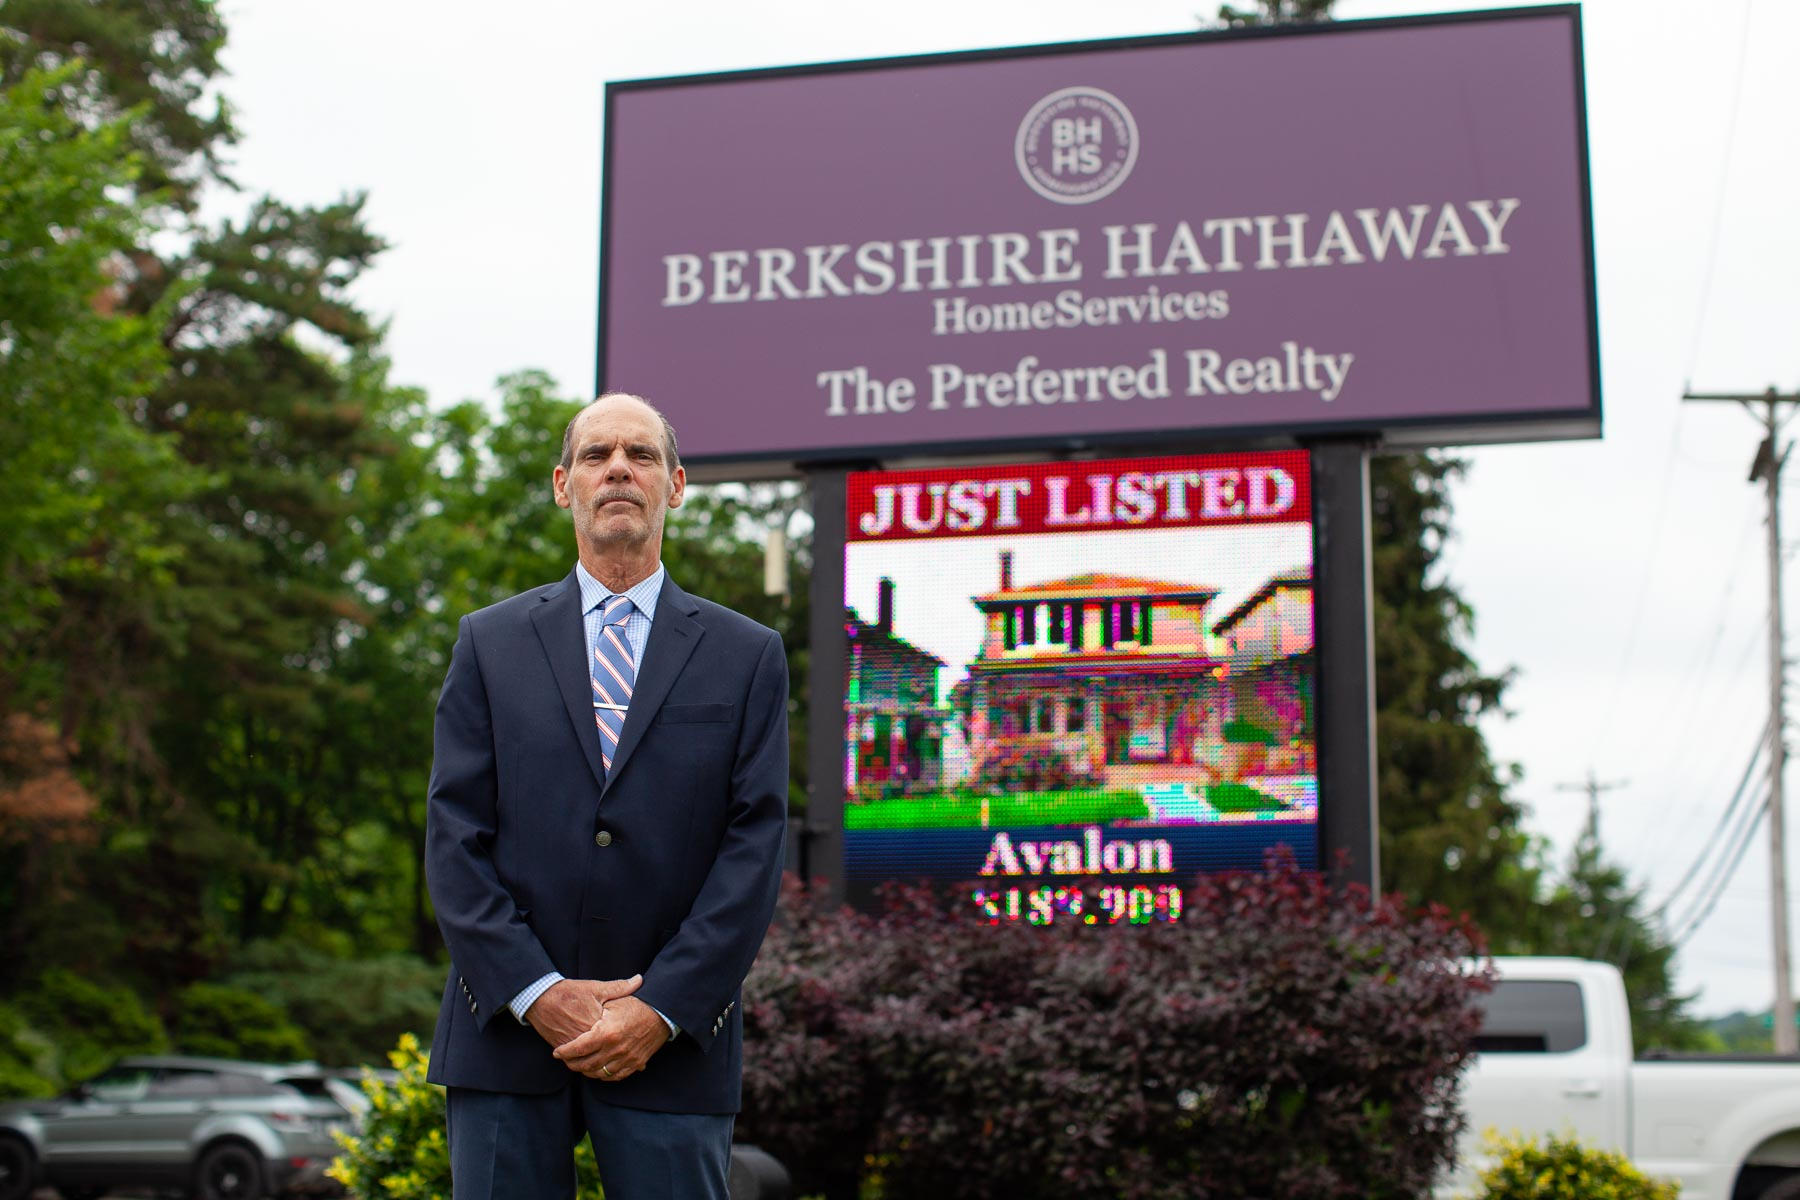 Berkshire Hathaway property manager Denis Tague photographed at the Berkshire Hathaway office in McCandless on June 11, 2021. (Photo by Quinn Glabicki/PublicSource)